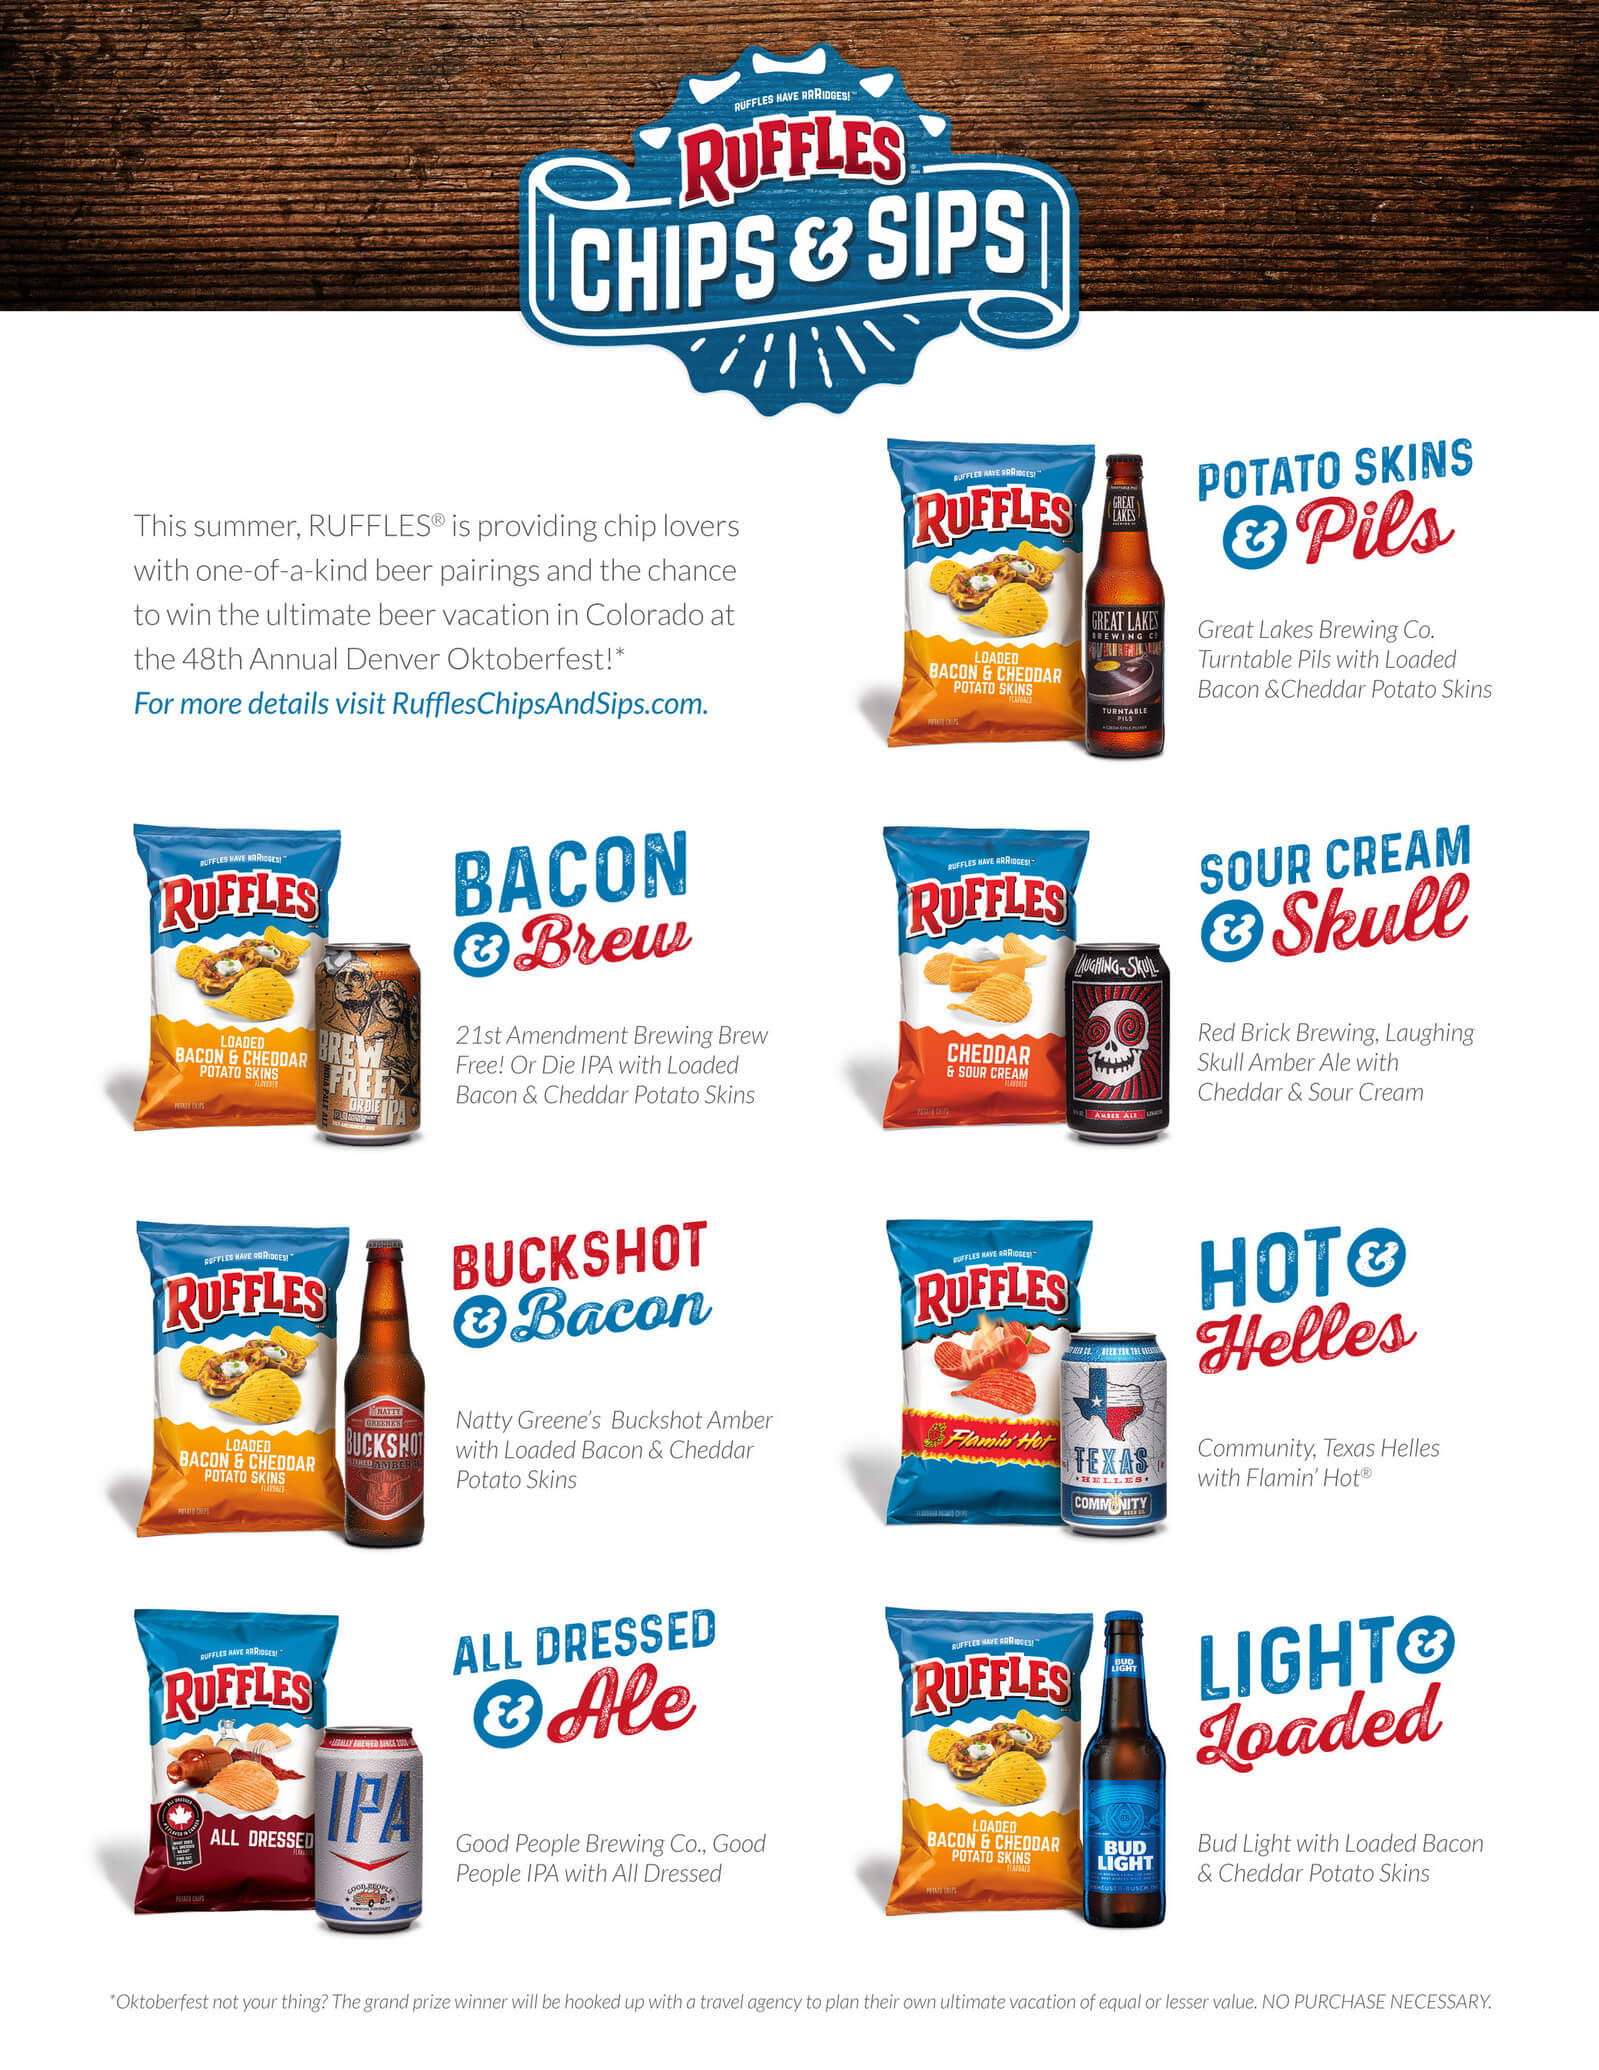 Frito-Lay Ruffles Brand Potato Chips partners with national and local craft breweries for Chips & Sips pairing guide - What's Shakin' week of July 24